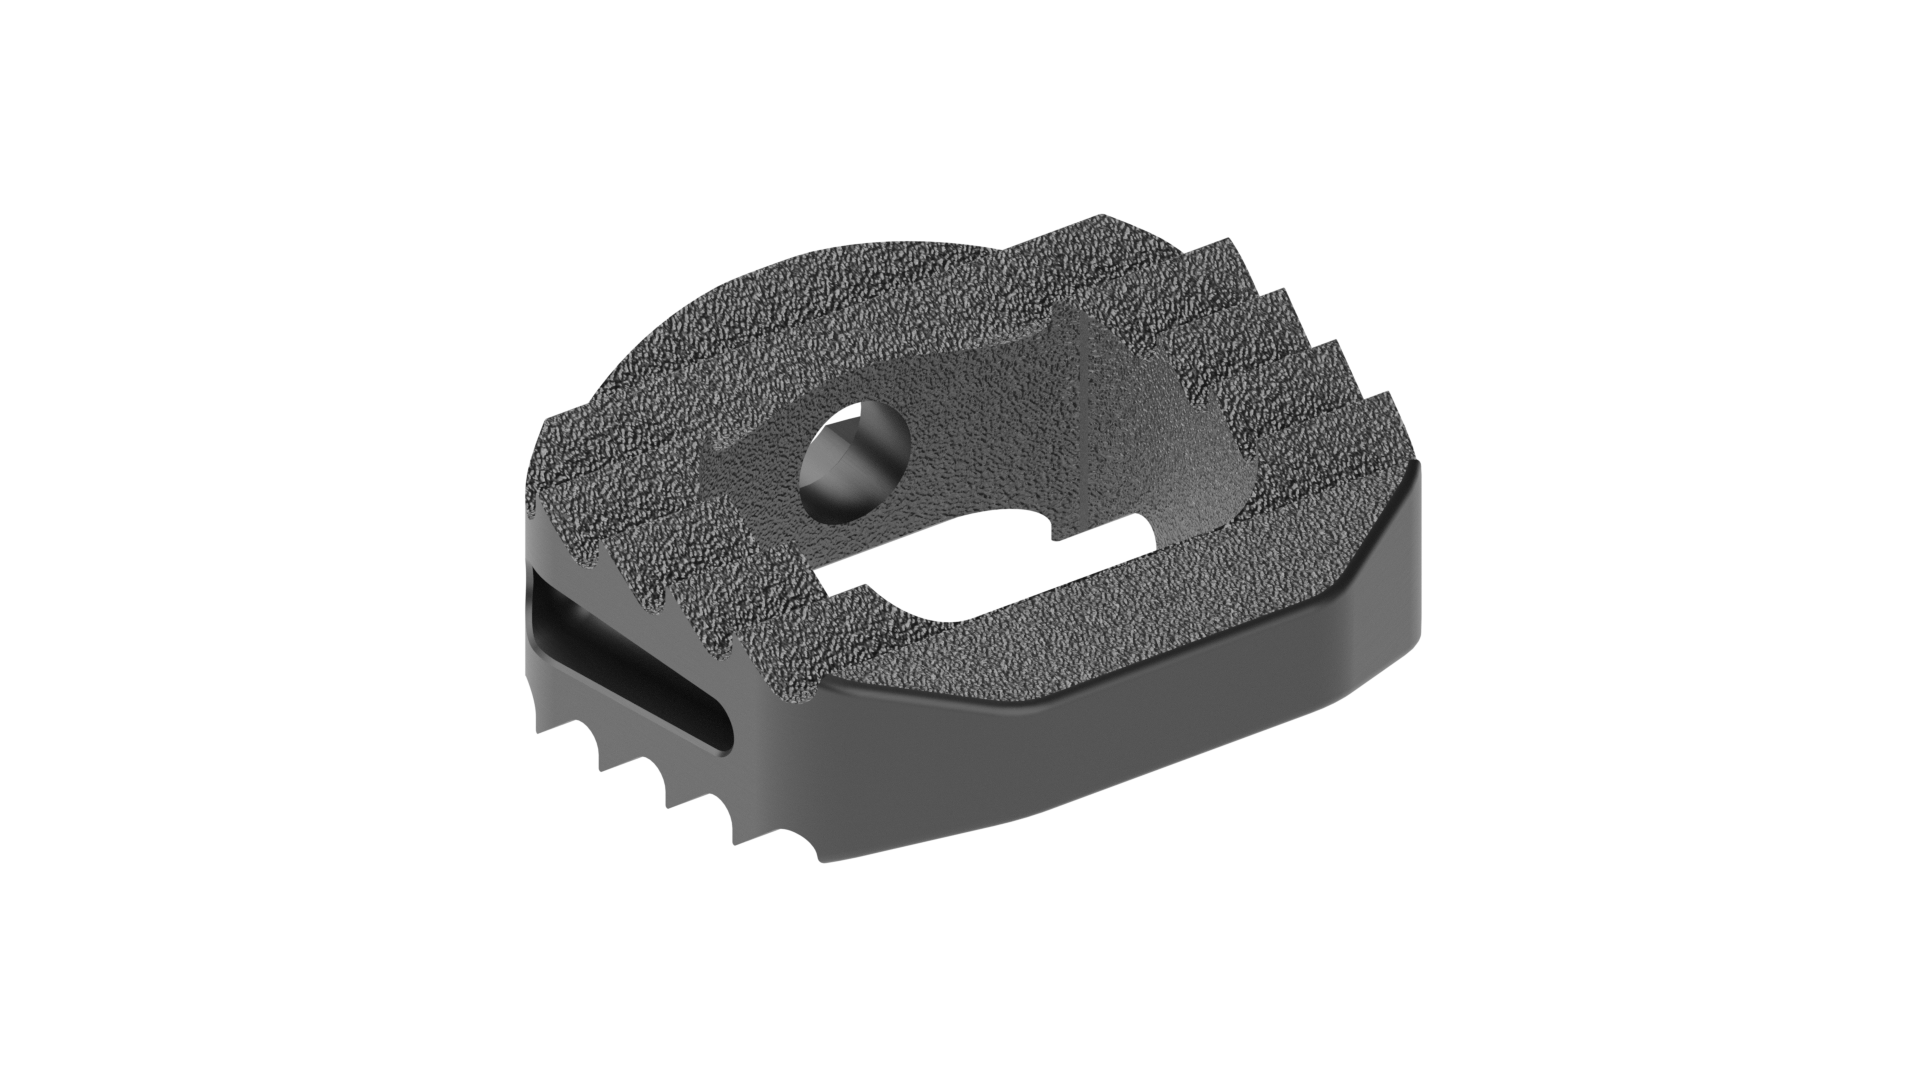 machined titanium Cervical ibfd implant with aggressive teeth and a large central opening for graft material.